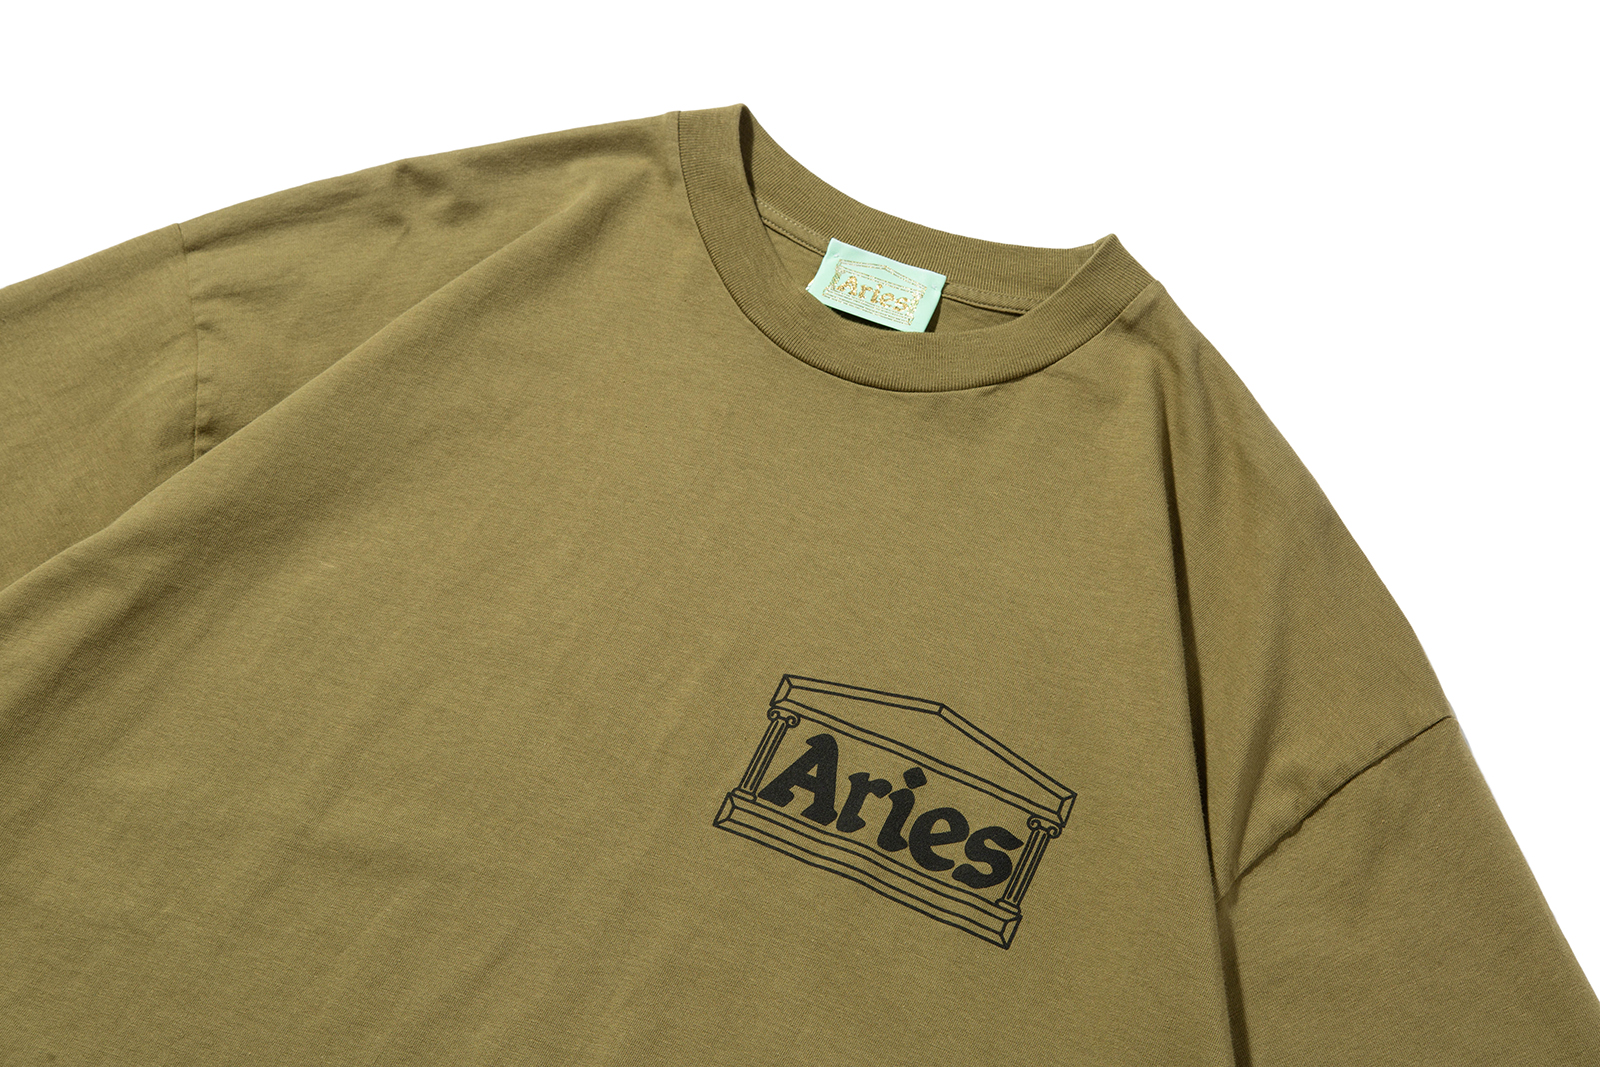 temple-ss-tee-olive_p1